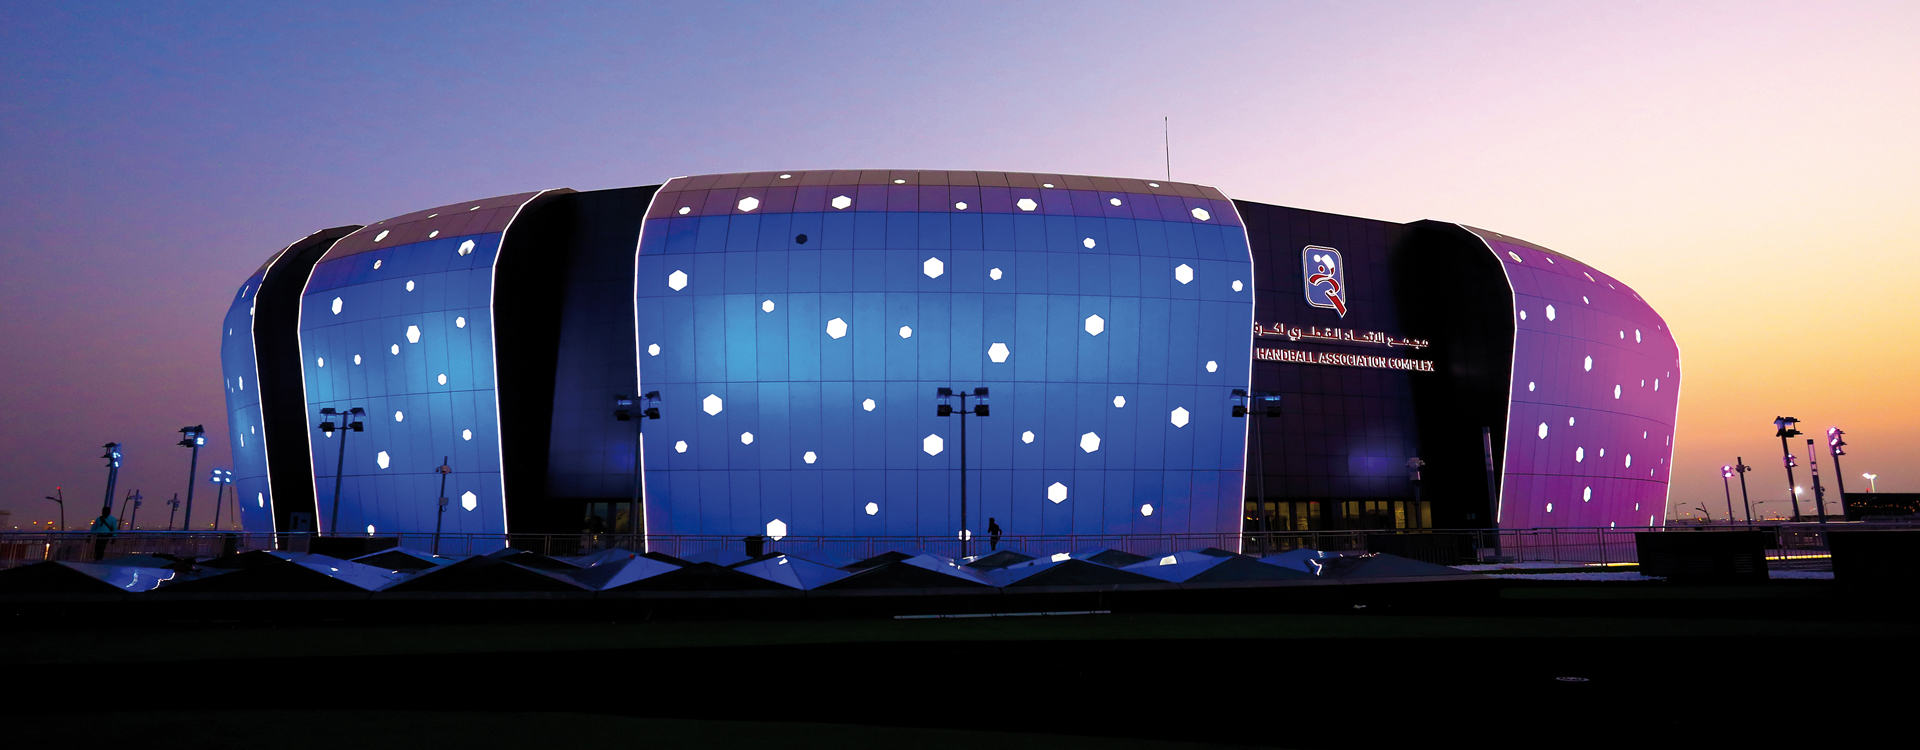 COMPLEXE DE L'ASSOCIATION DE HANDBALL DU QATAR